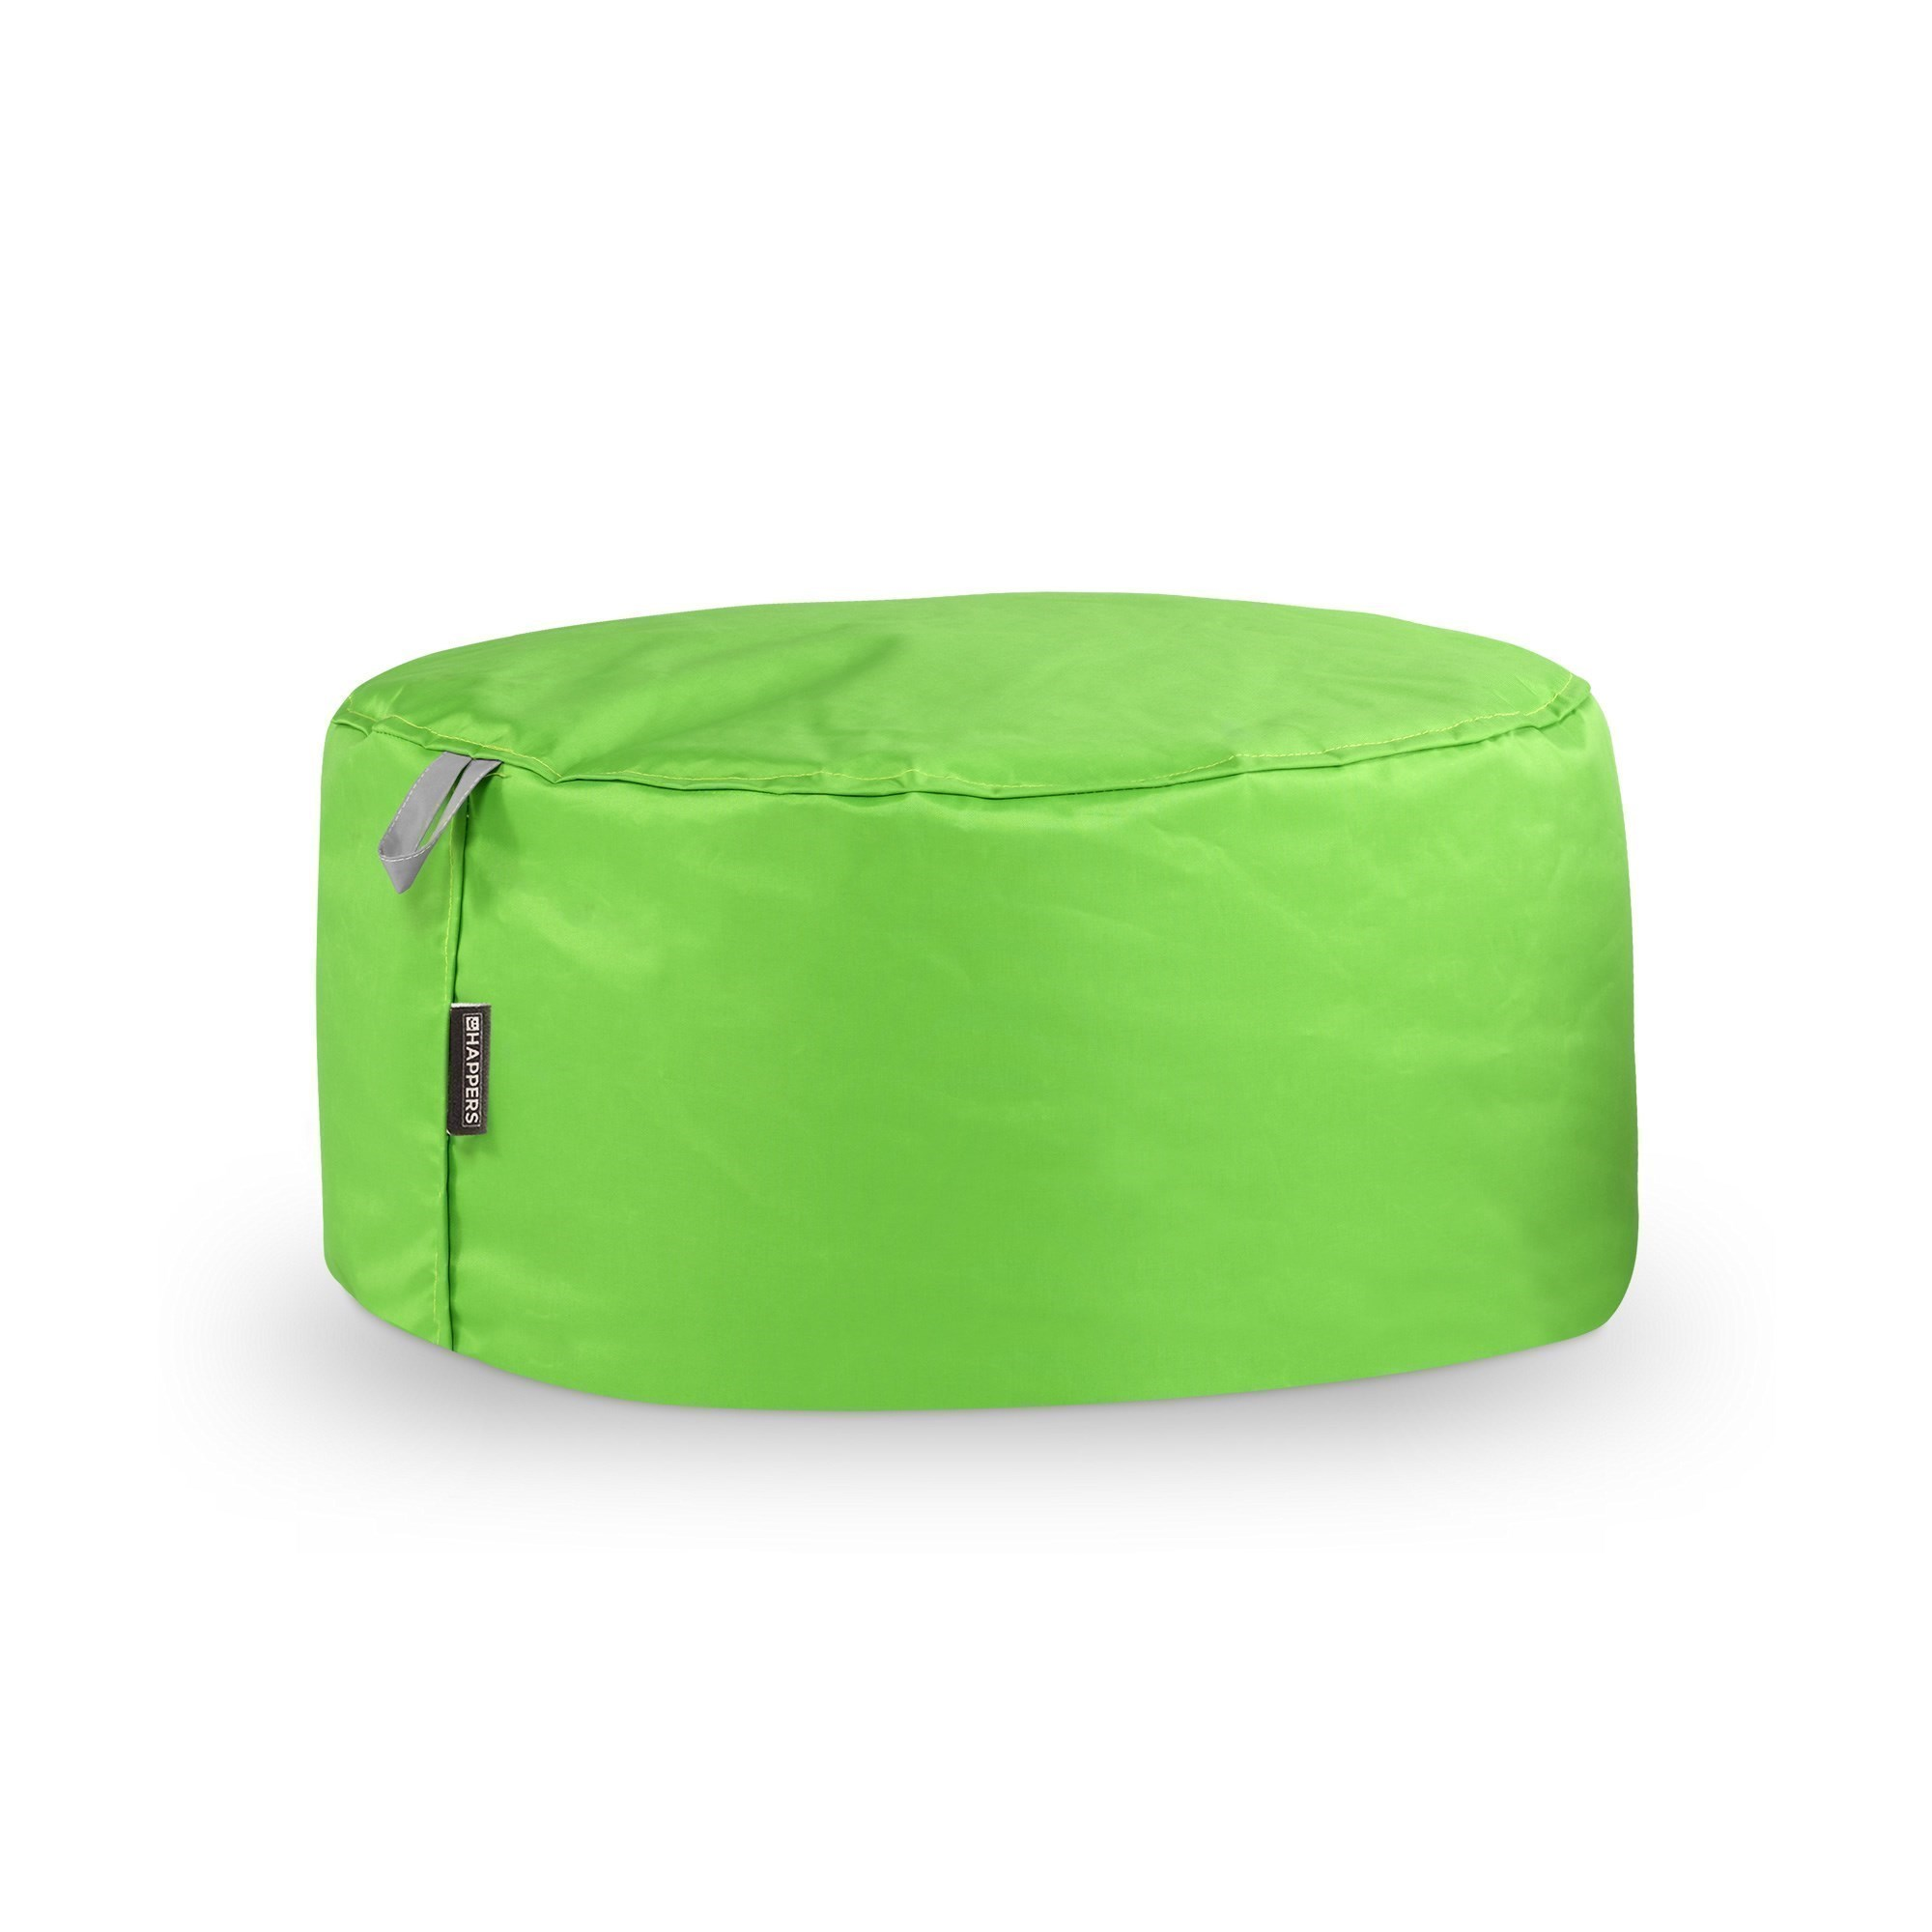 Puff Redondo Naylim Impermeable Verde Happers